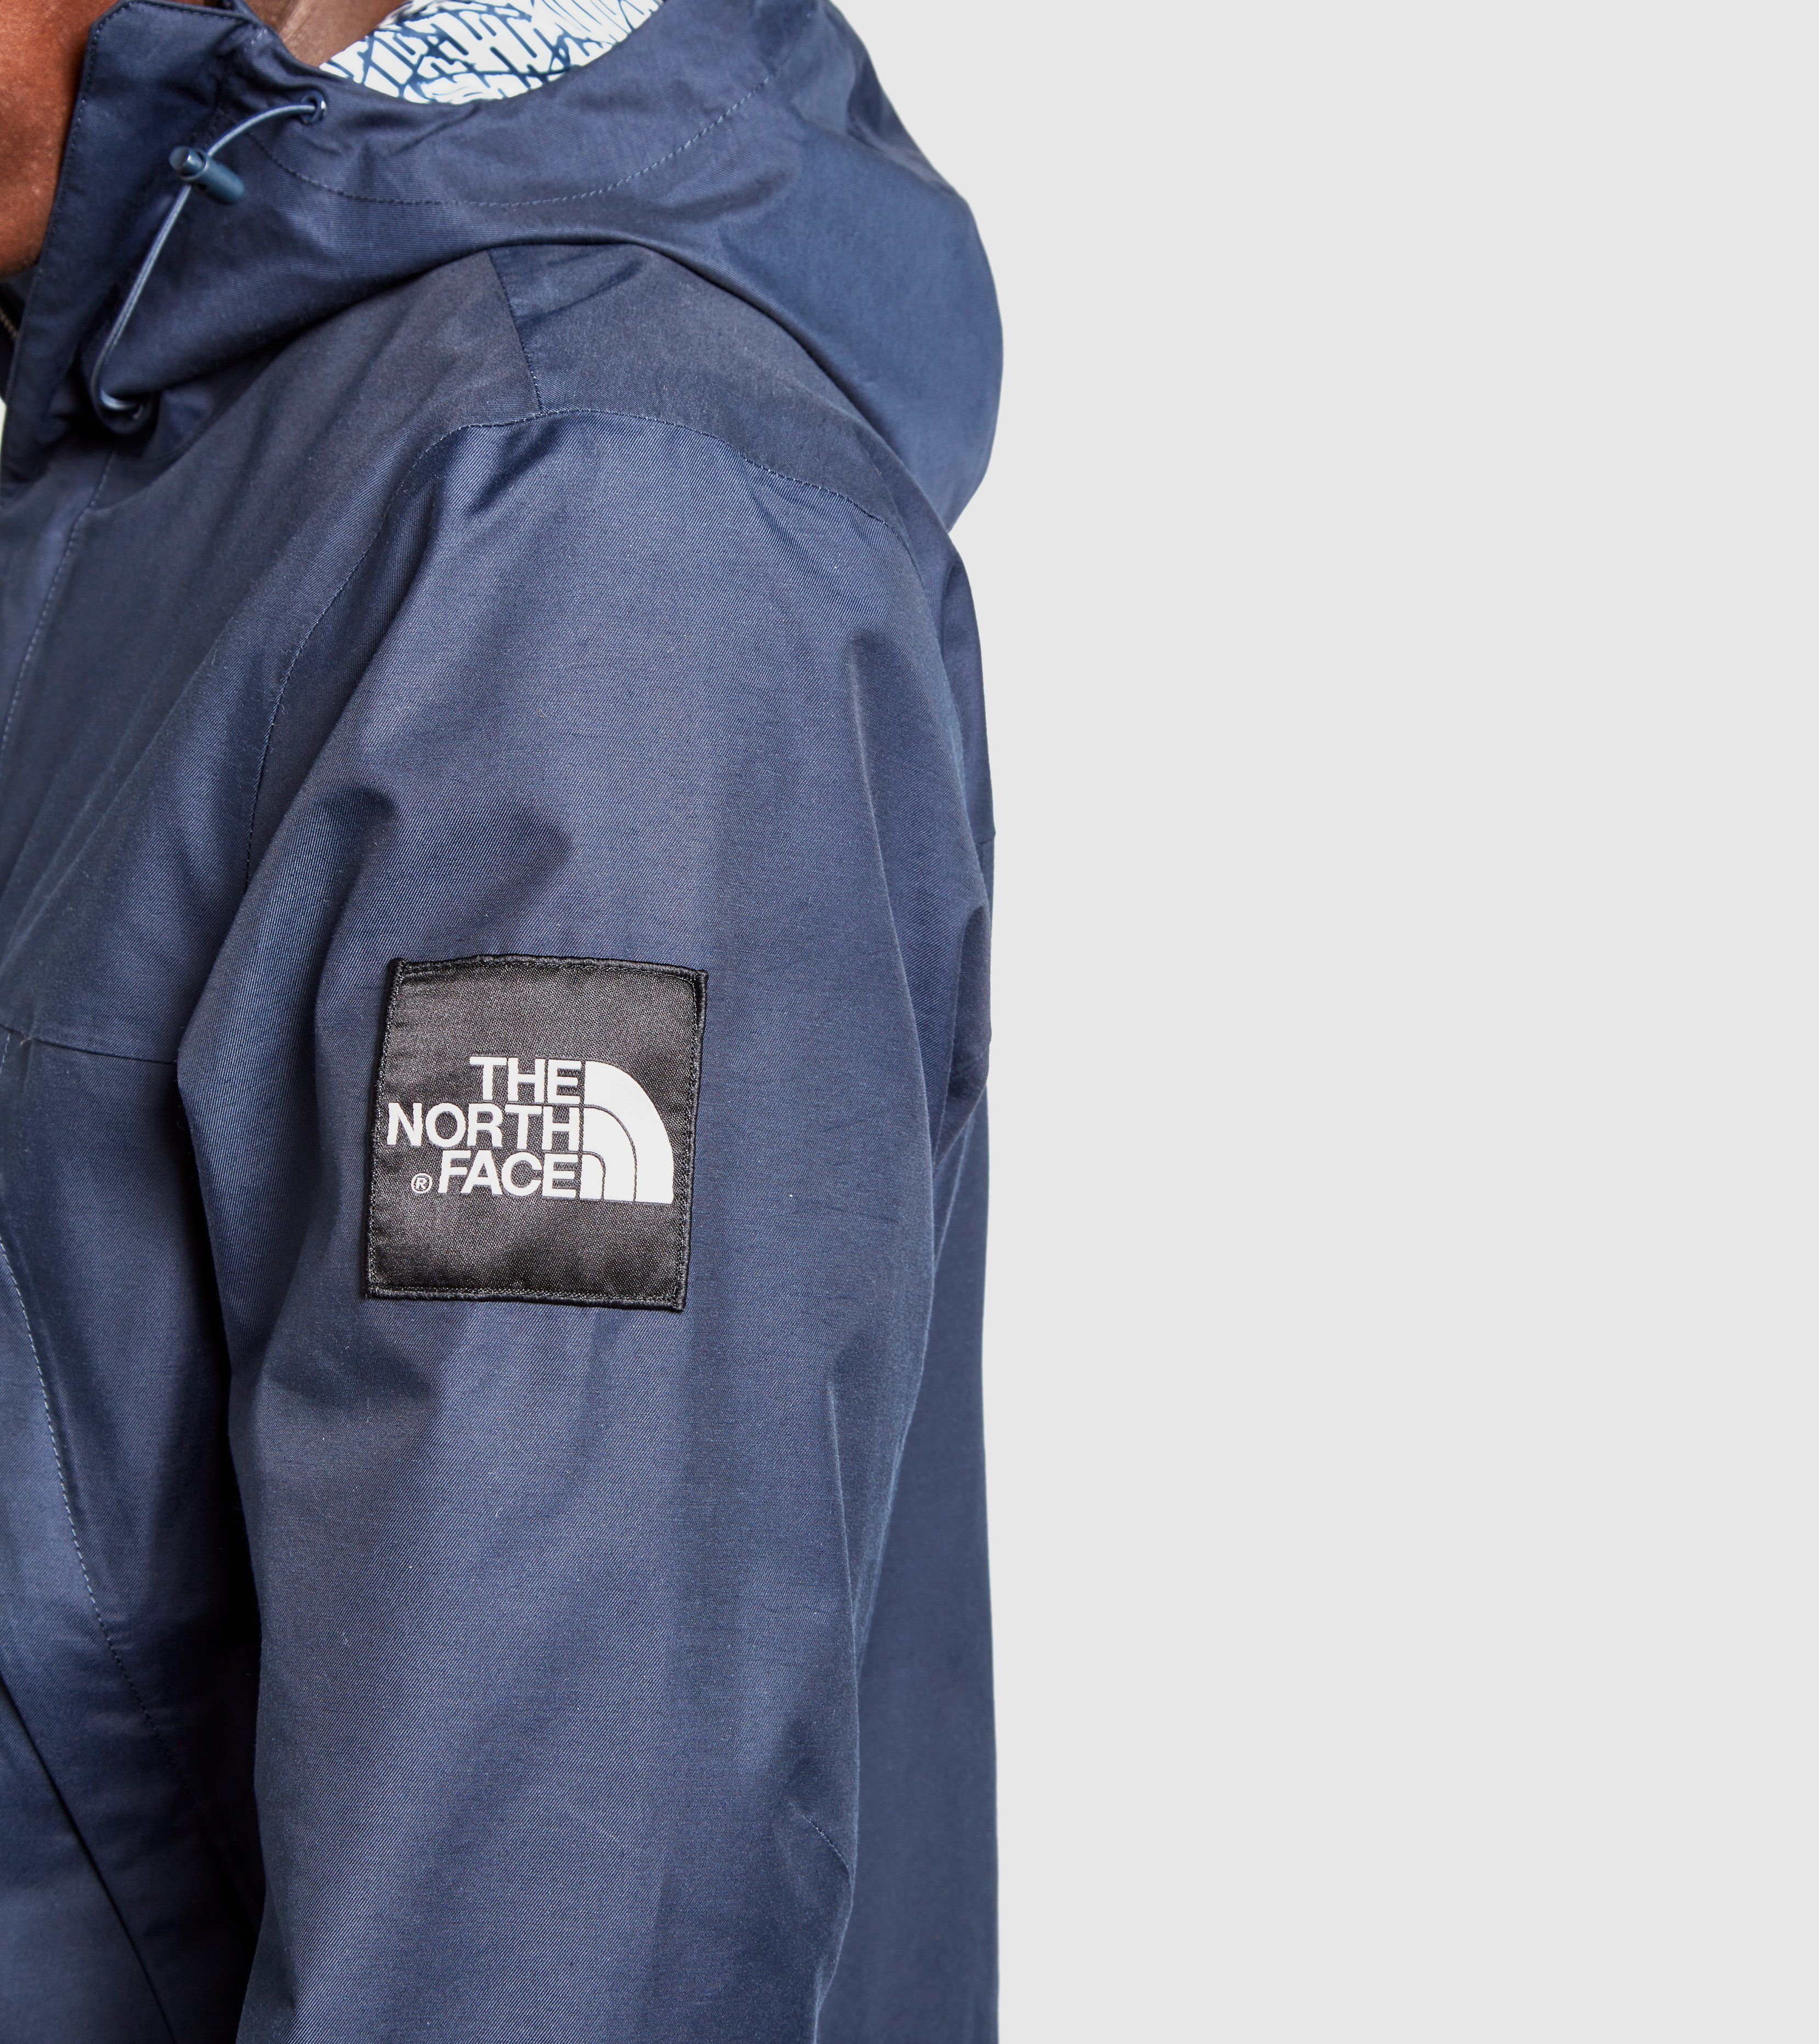 The North Face Black Label 1990 Mountain Jacket